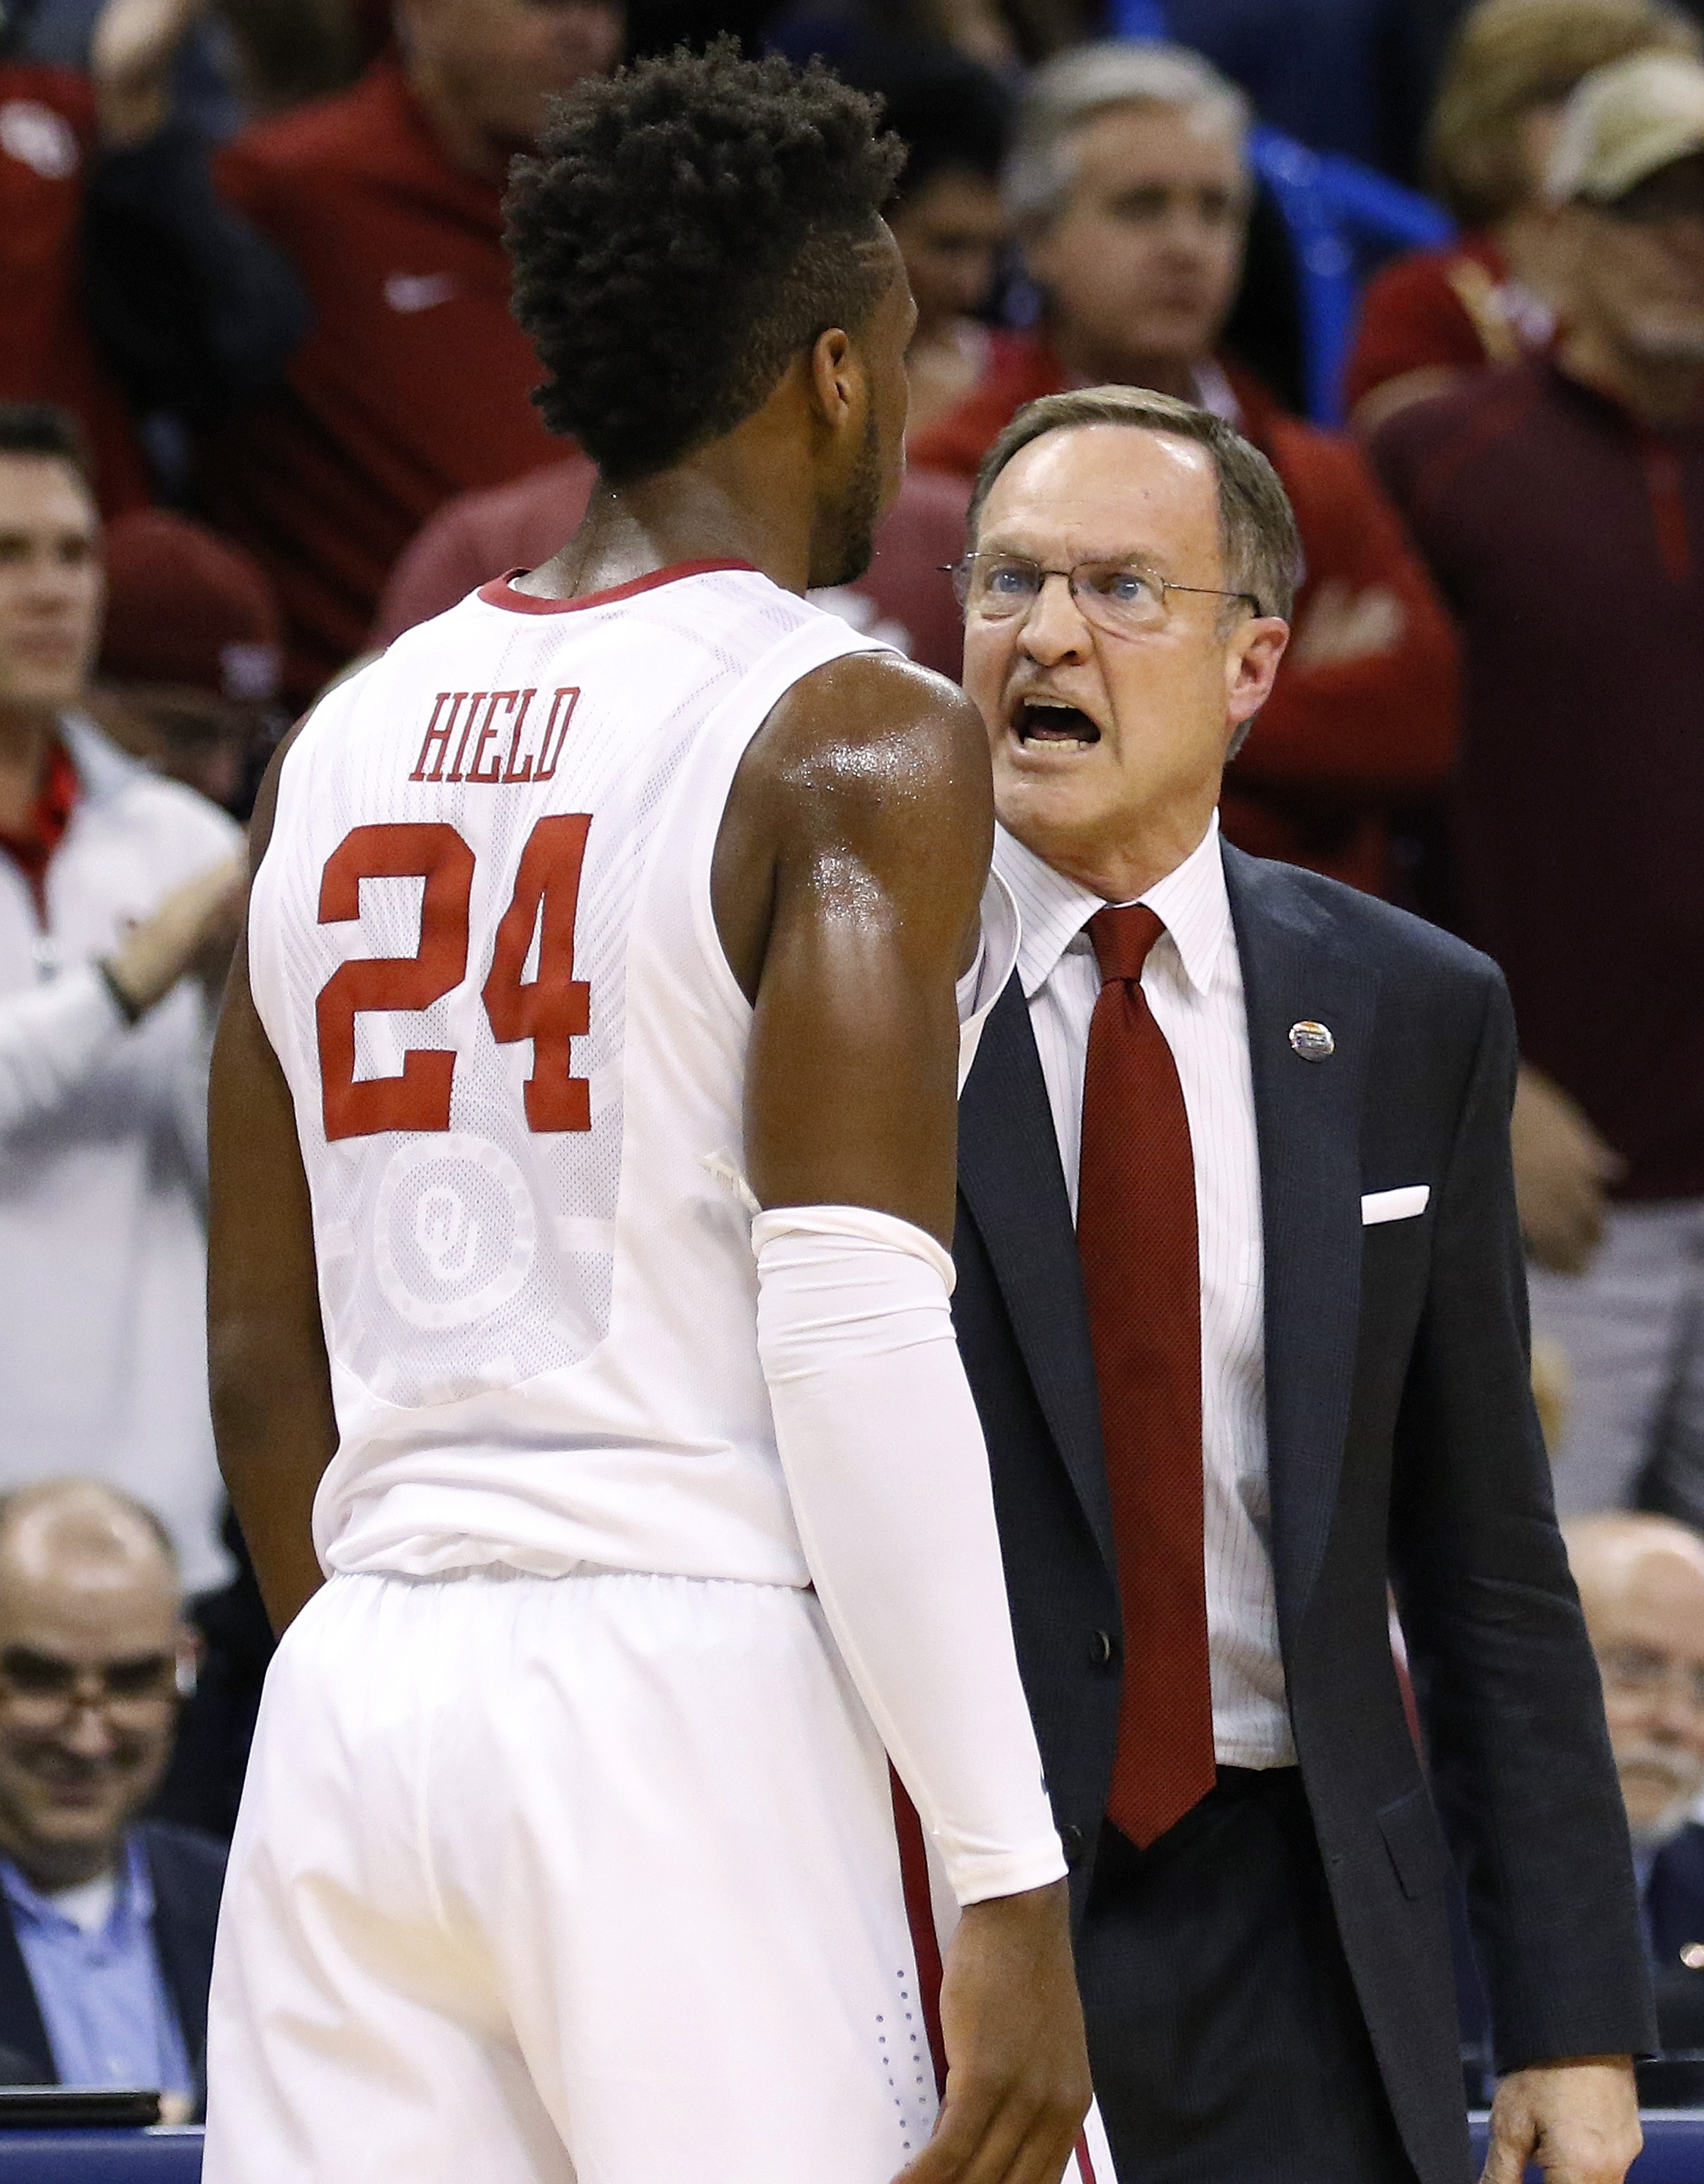 Oklahoma coach Lon Kruger talks to guard Buddy Hield during the first half of a first-round men's college basketball game against Cal State Bakersfield in the NCAA Tournament, Friday, March 18, 2016, in Oklahoma City. Oklahoma won 82-68. (AP Photo/Alonzo